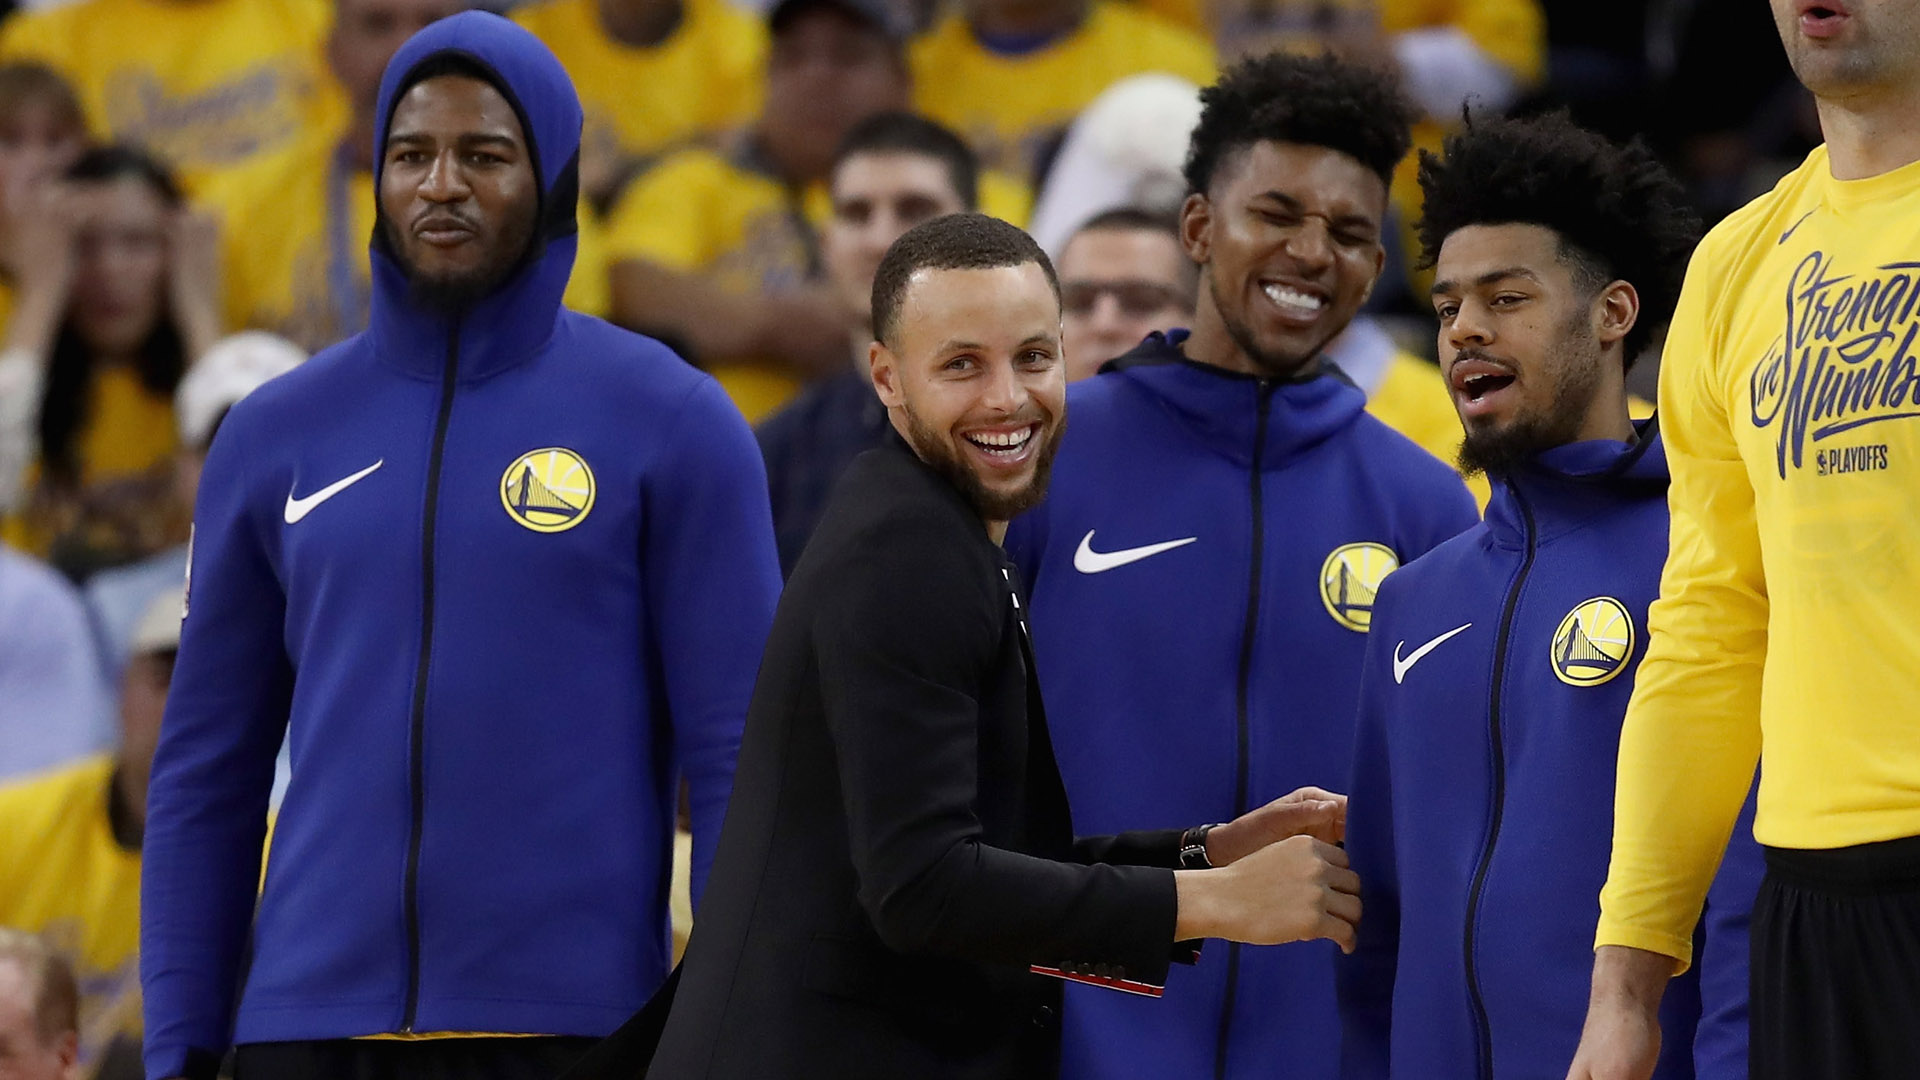 NBA Finals 2018: Under-the-radar players to watch for Cavs-Warriors